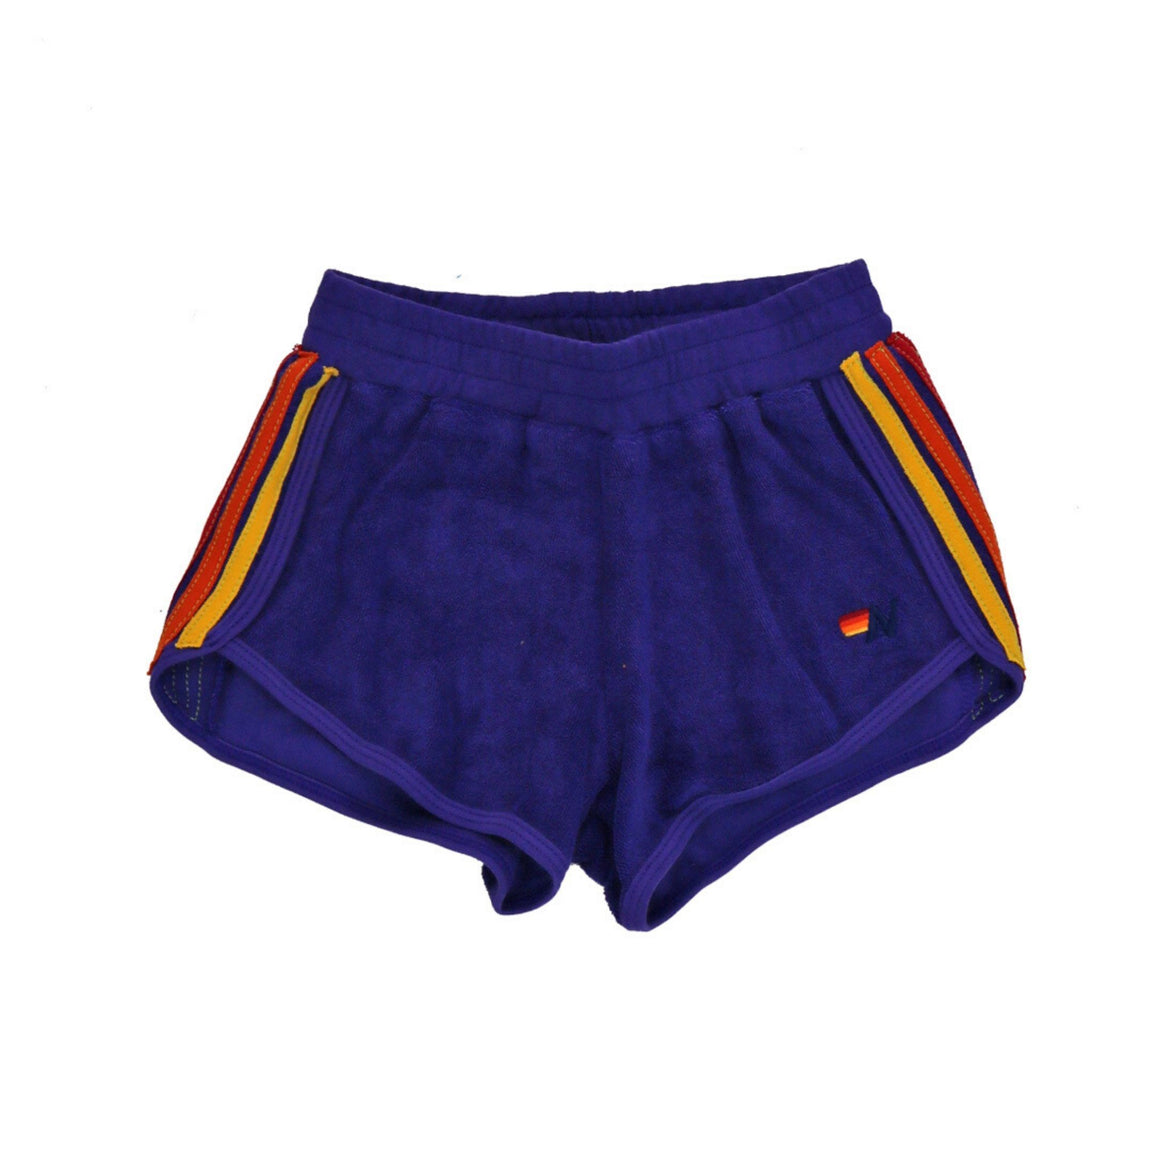 Aviator Nation - Kids 4 Stripe Jogger Shorts - Parachute Purple Shorts Aviator Nation